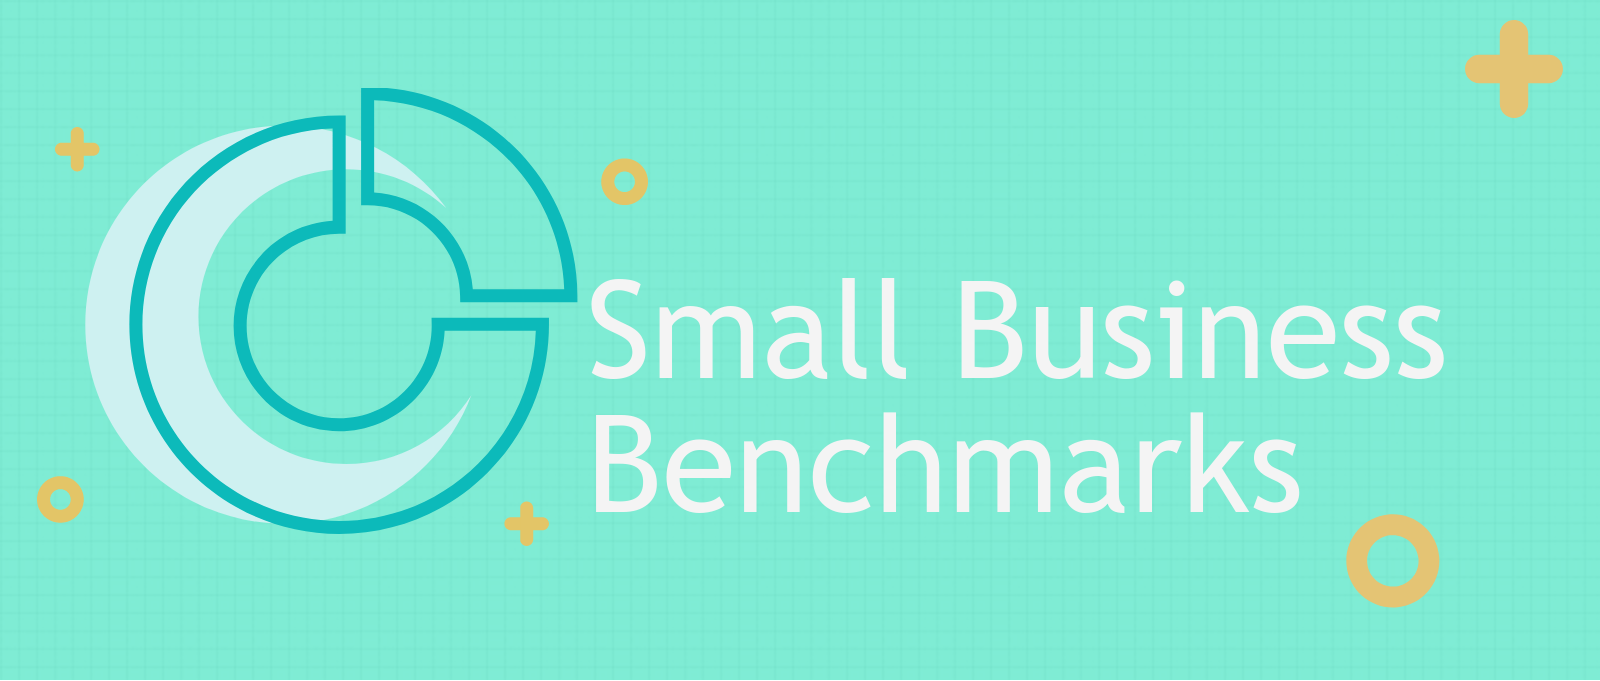 Is Your Business Above Average?